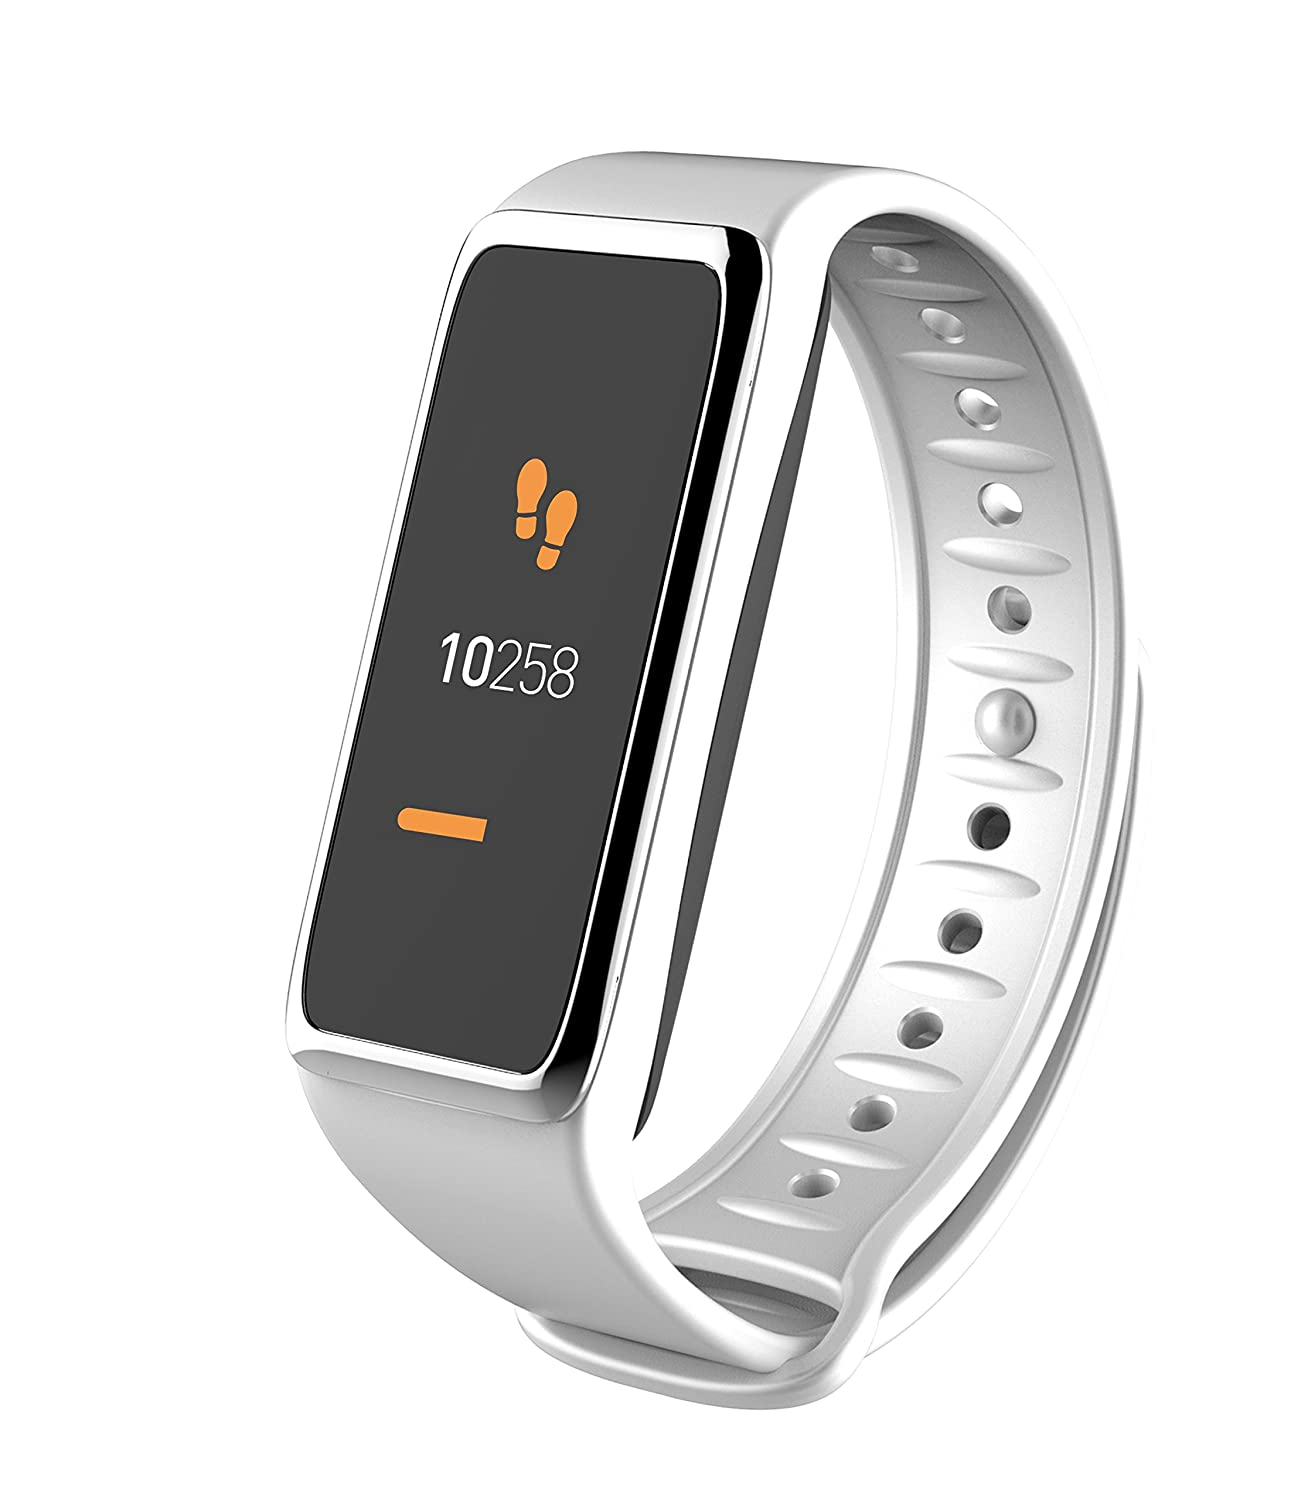 MyKronoz krzefit3 Activity Tracker, White/Silver, Universal ...